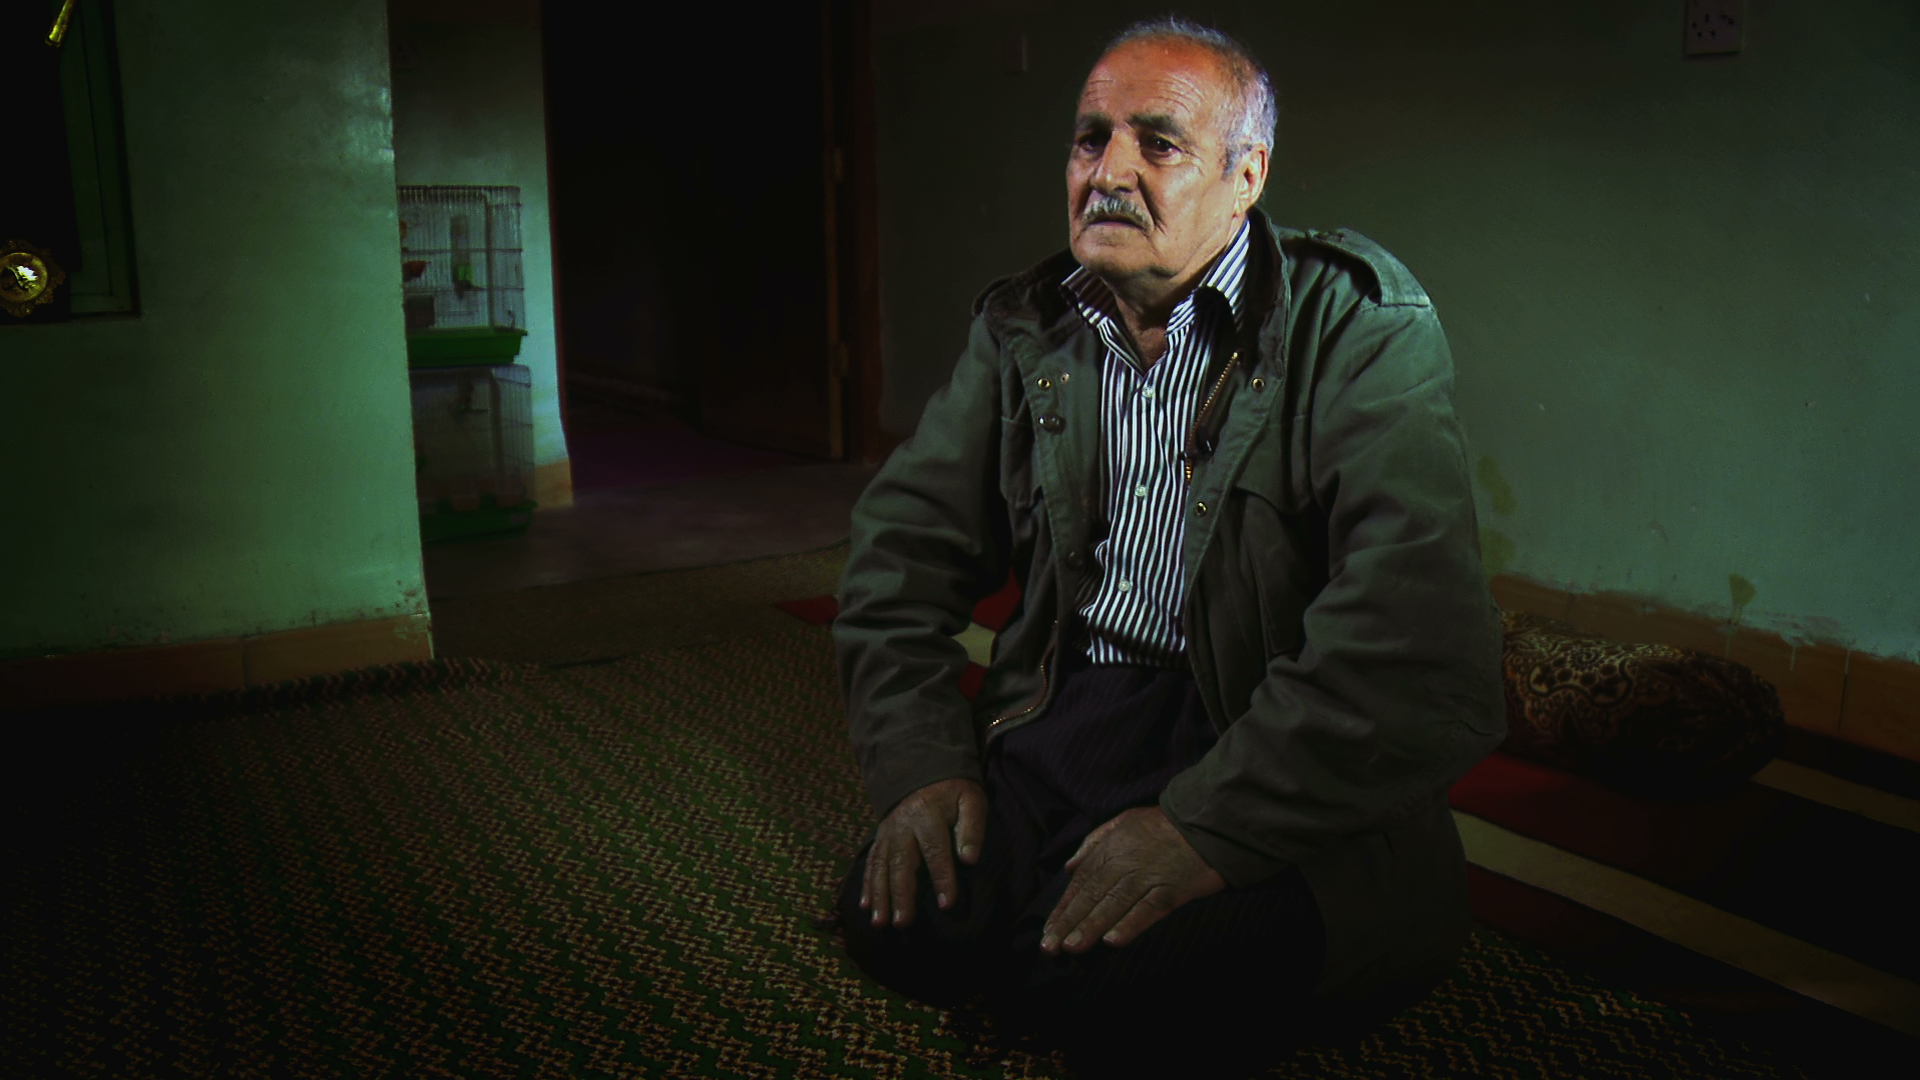 FARS AZIS AHMED from Serqala village attempted to find his two missing brothers during Anfal but discovered that only one of them, Said, was alive. He was in prison however. Days later, Said was executed in Kalar's Security Jail. Fars talks of his regret at not urging him to flee.